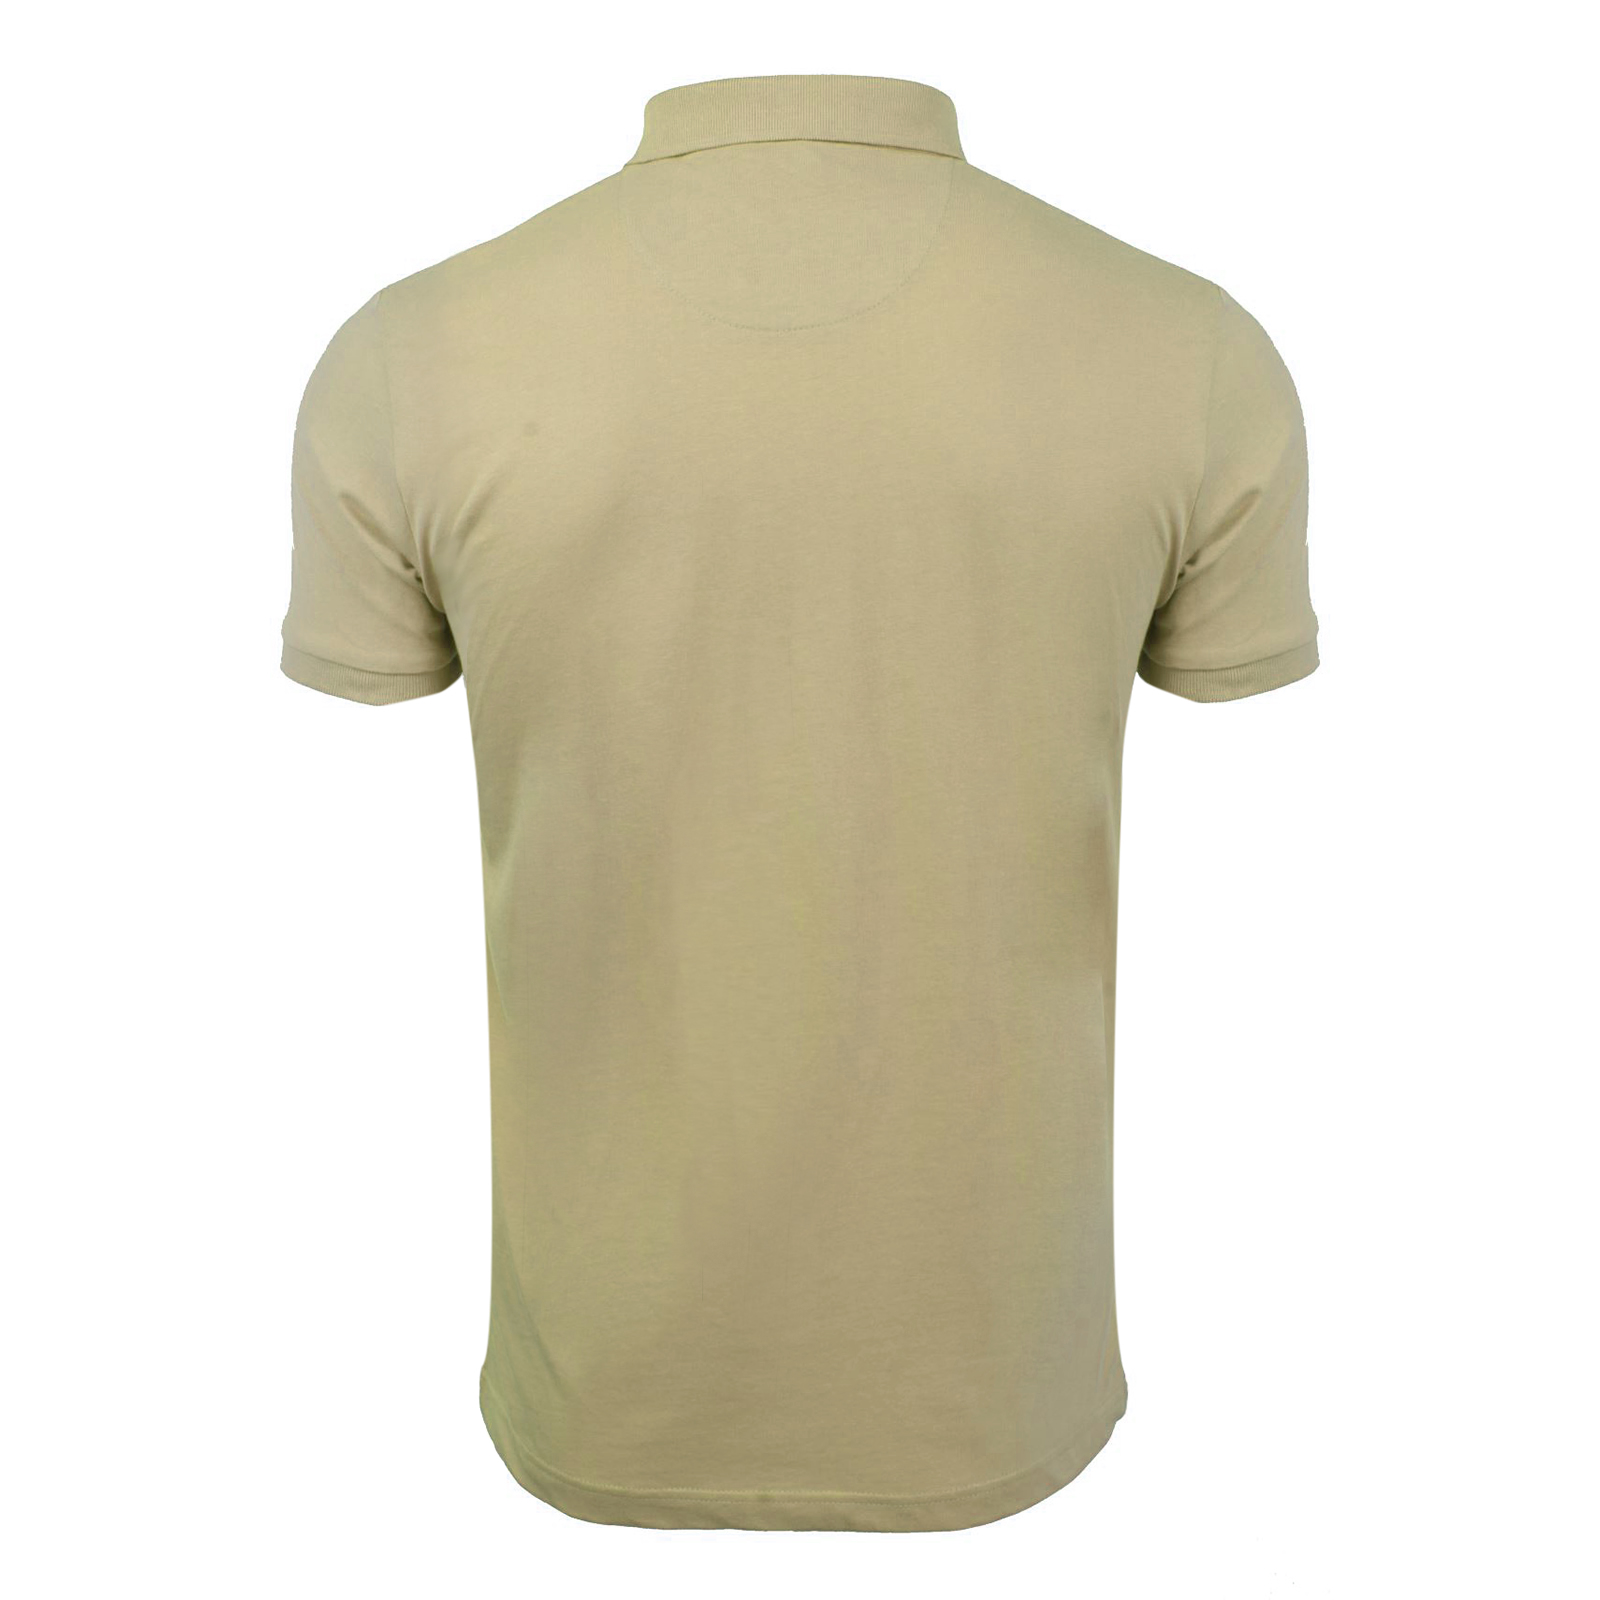 Mens-Polo-T-Shirt-Brave-Soul-Julius-Cotton-Collared-Short-Sleeve-Casual-Top thumbnail 15